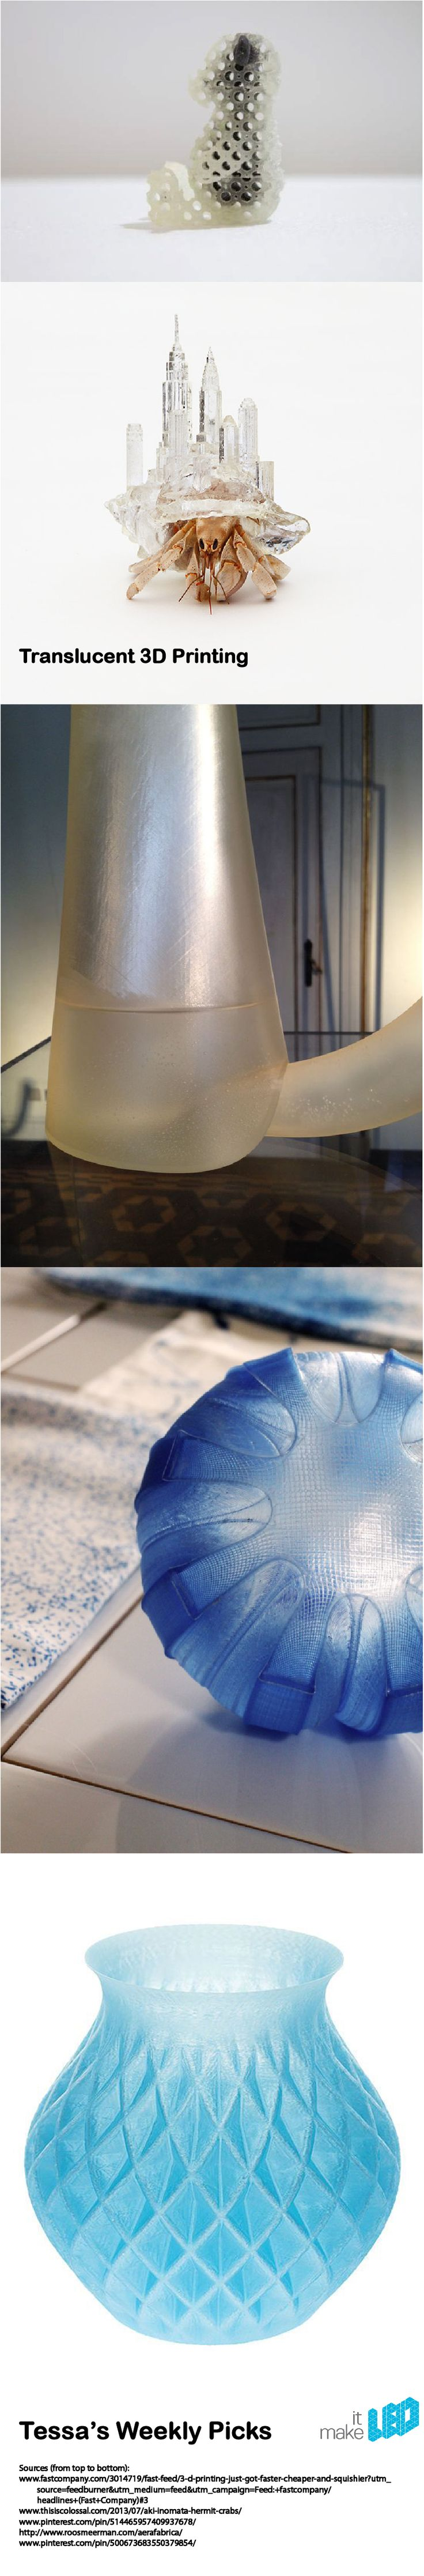 5 Translucent 3D printed items, from Tessas Weekly Picks